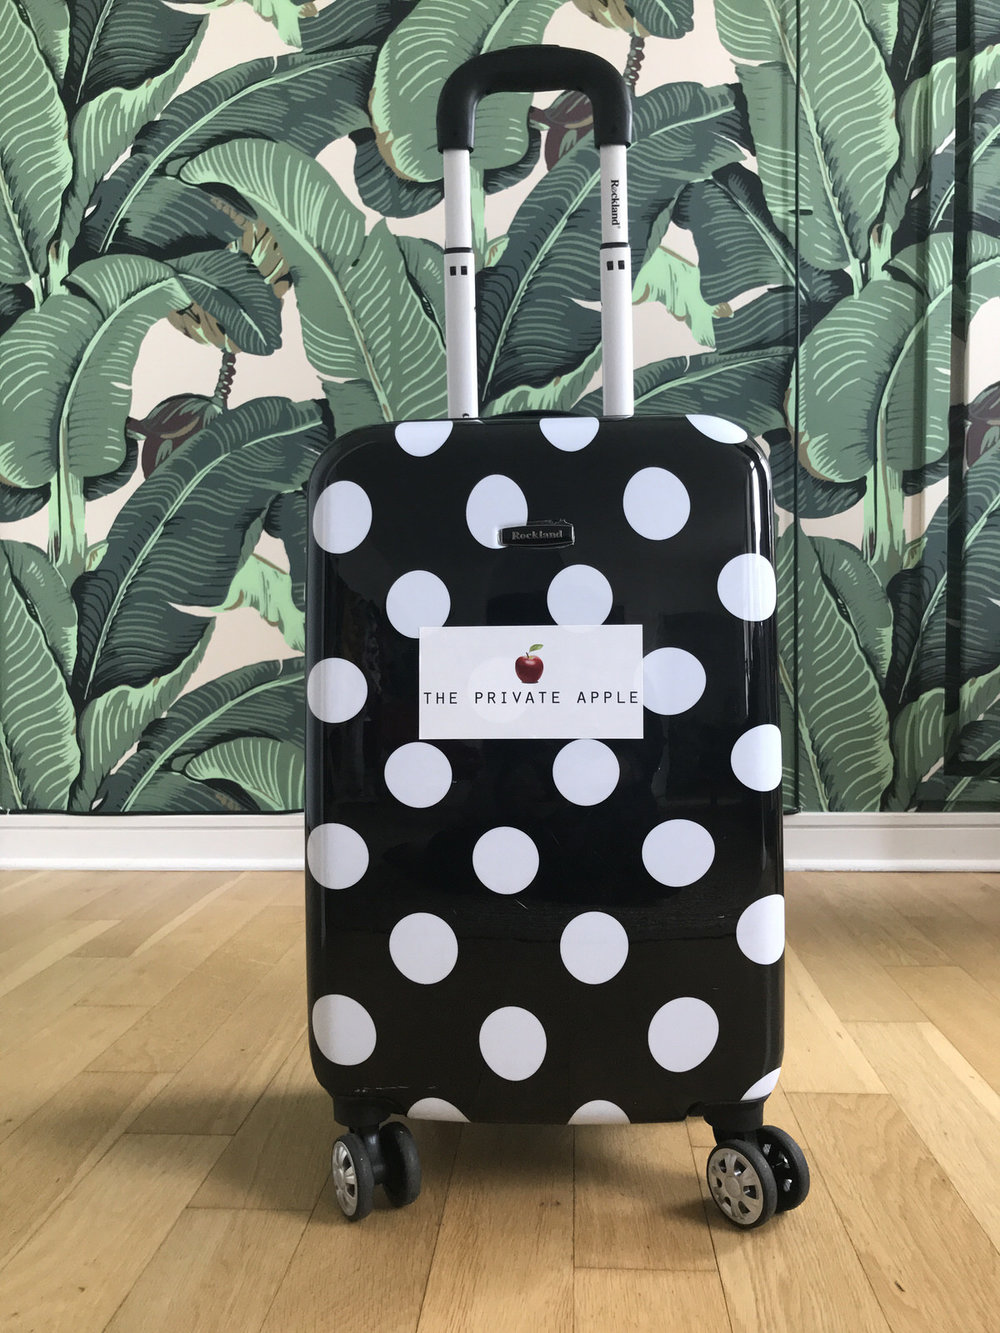 THE SUITCASE - The Suitcase is a selection of items curated by Nana & Paula with your style, size and needs in mind.We drop The Suitcase off and you have 48 hours to try the pieces on, then we will pick it up.